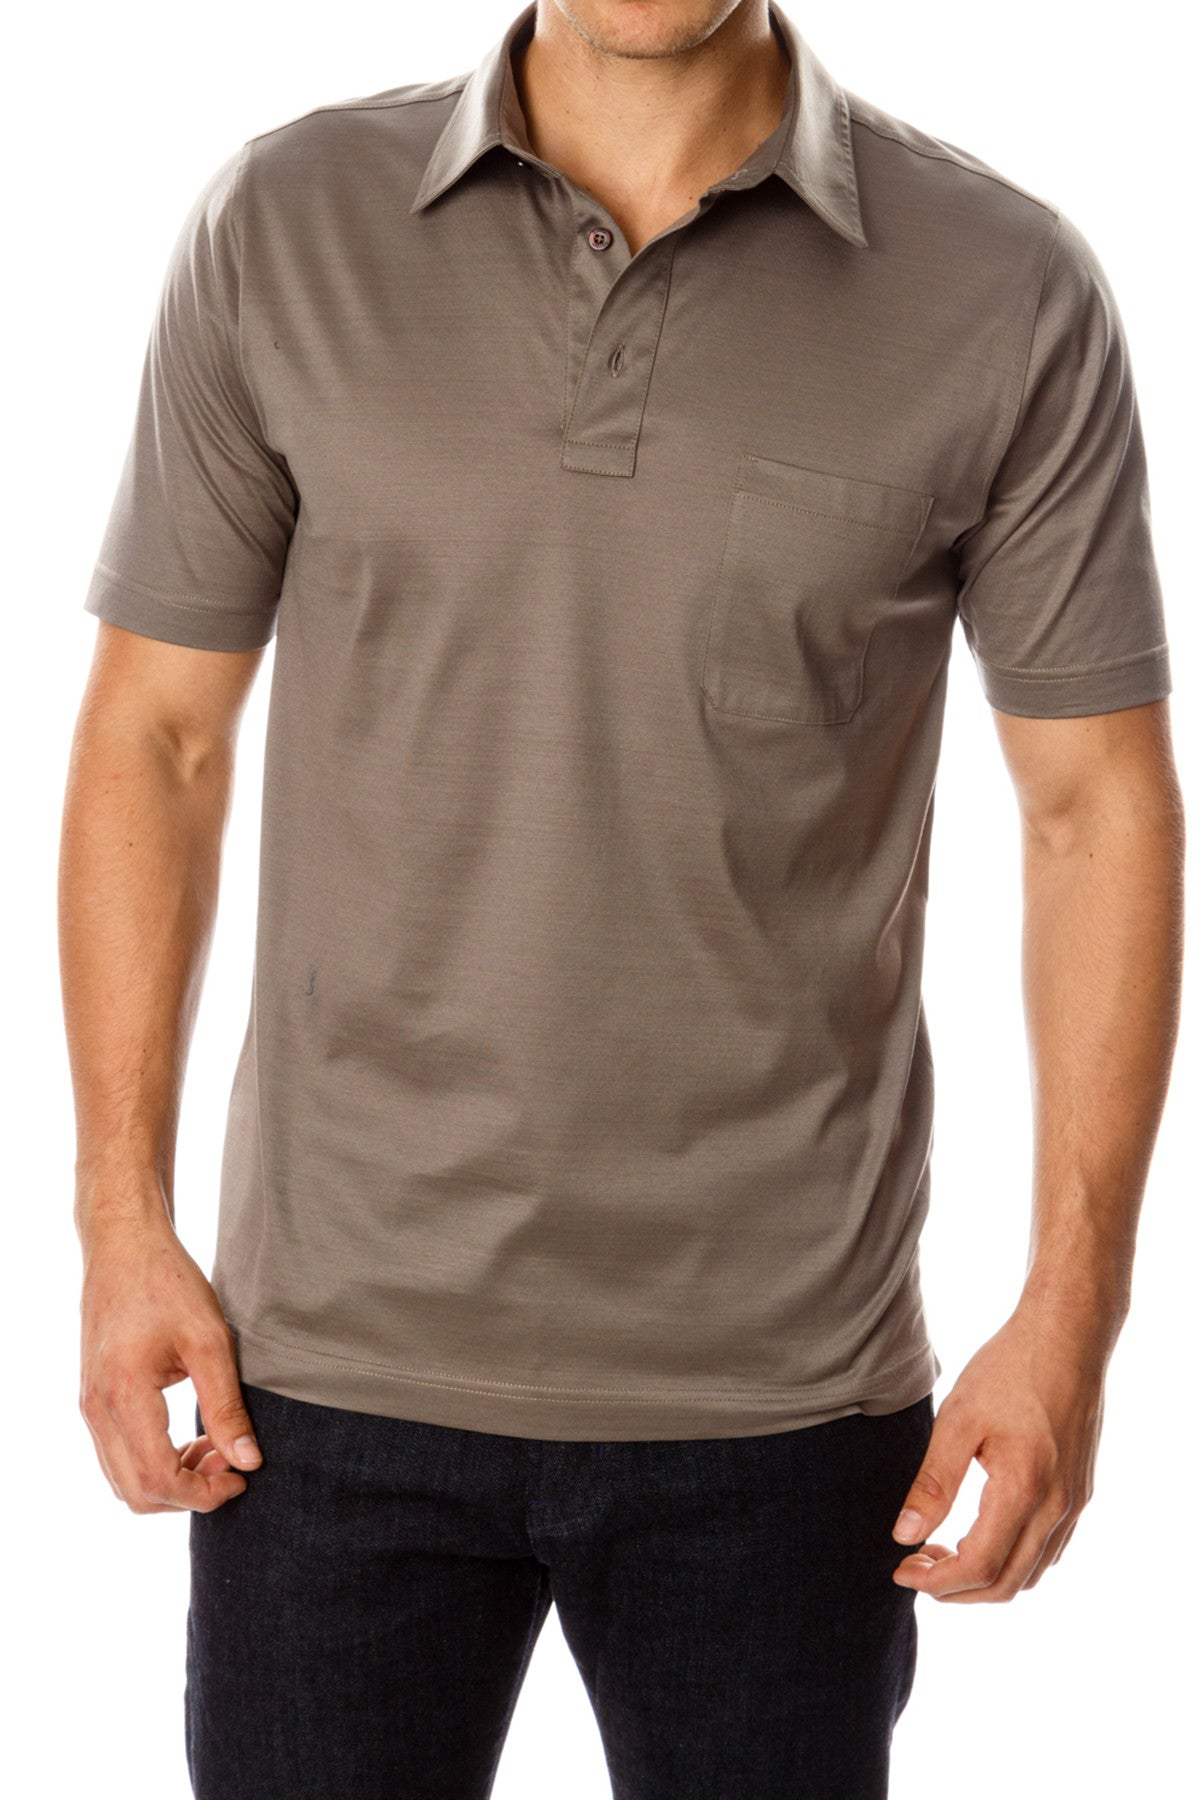 Mercerized Cotton Dark Tan Polo